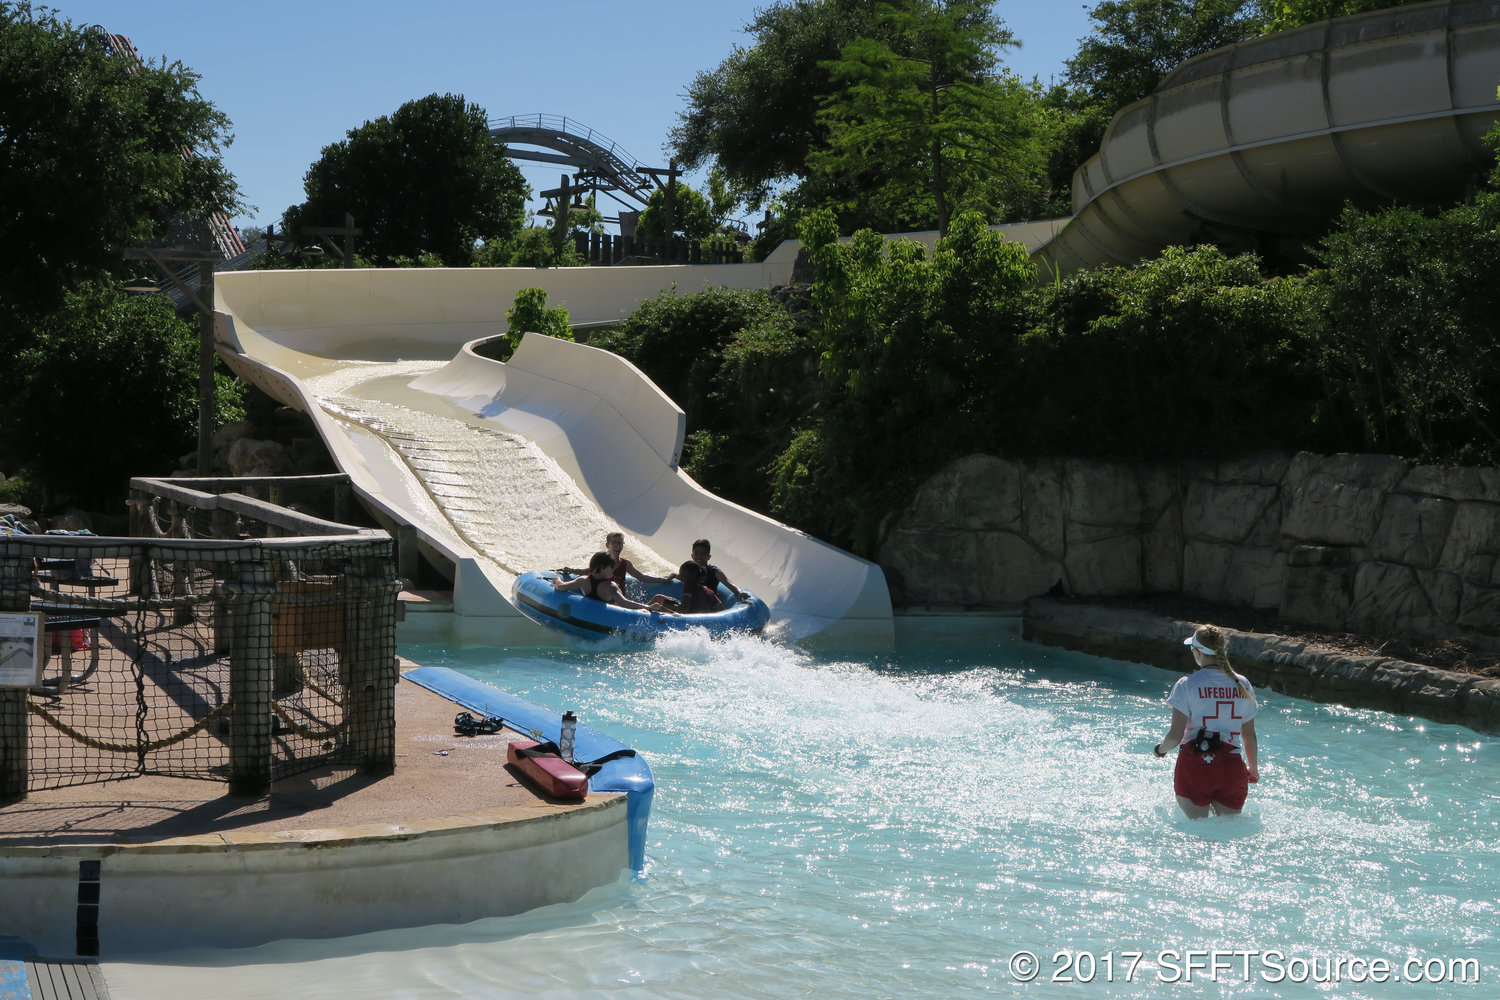 Texas Tumble is an exciting slide that fits multiple riders.